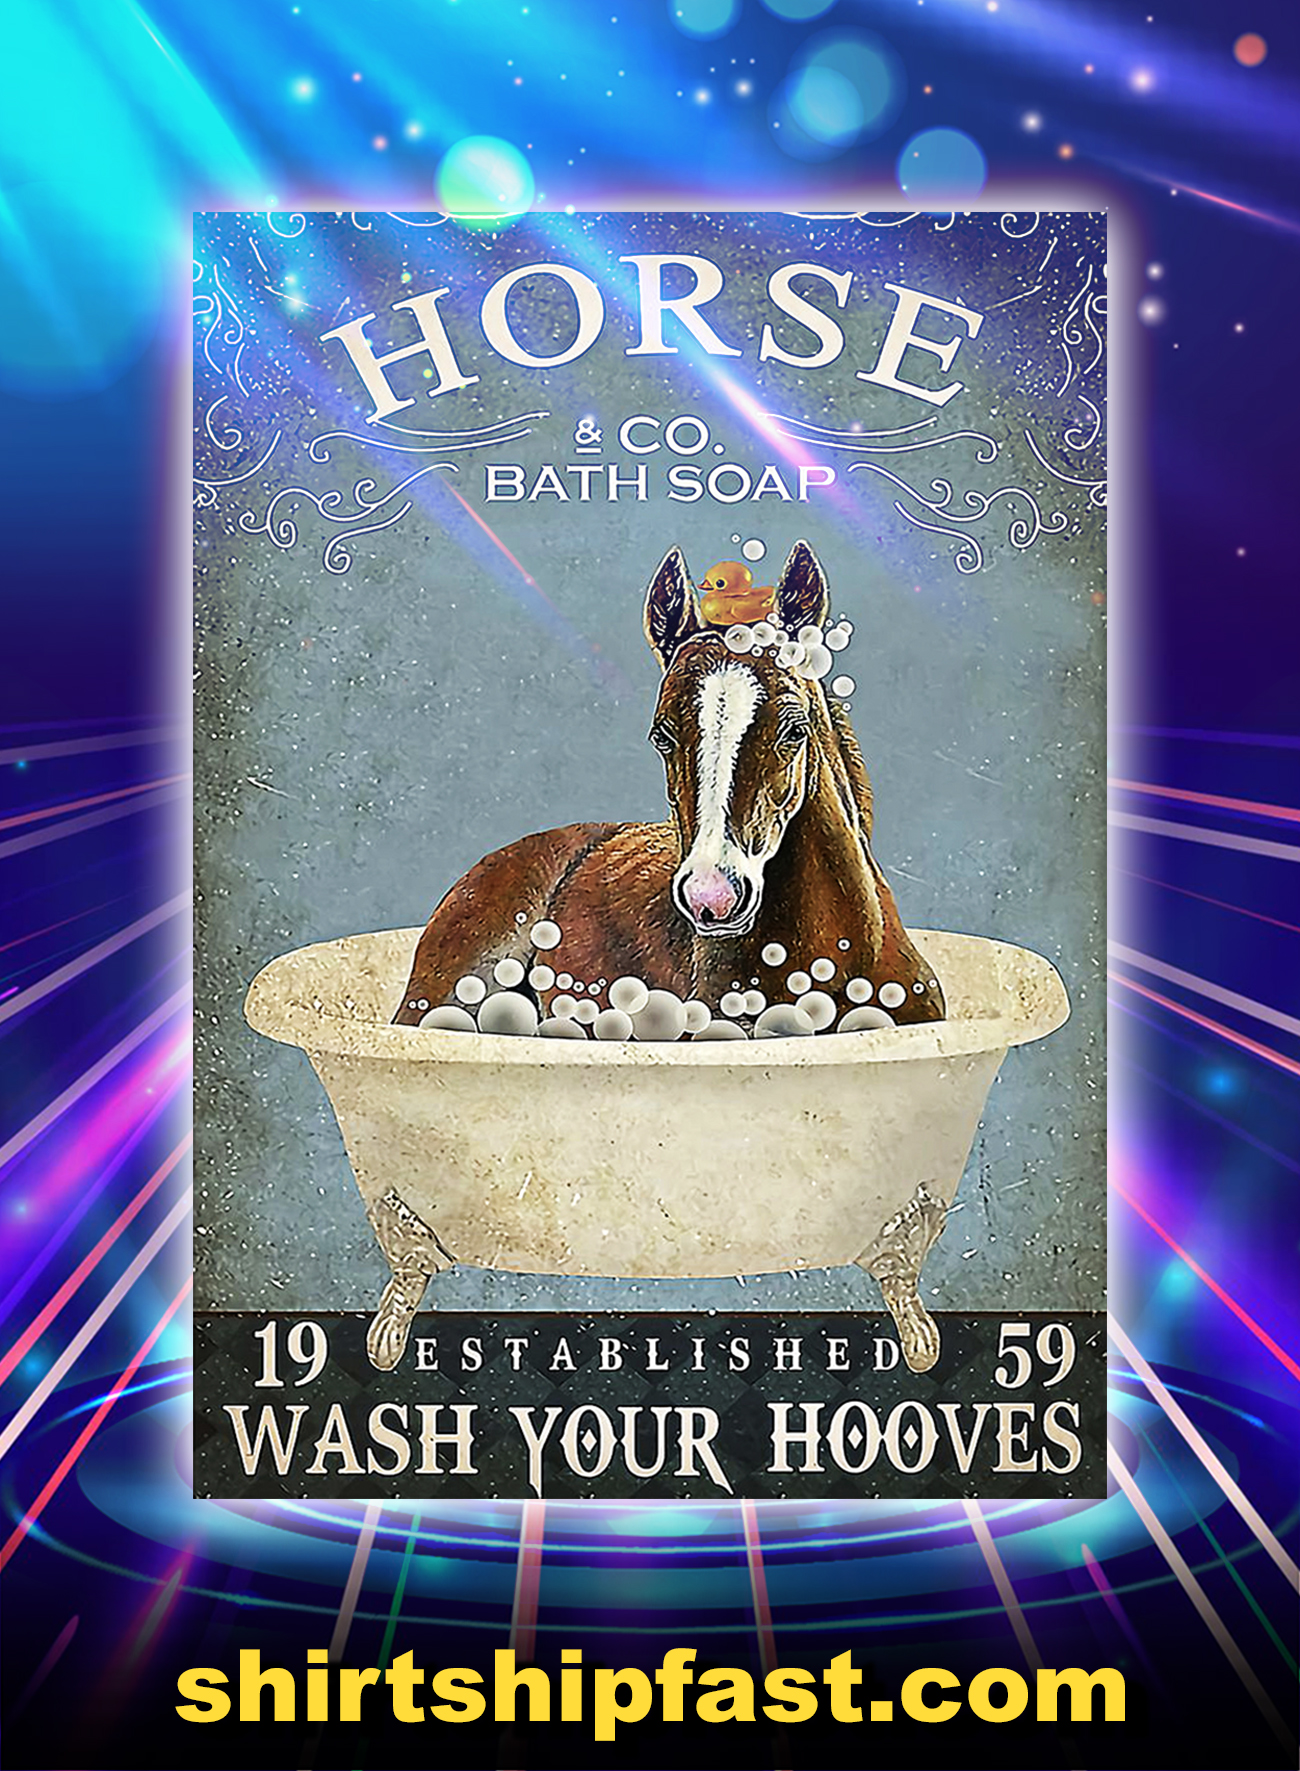 Horse co bath soap wash your hooves poster - A1